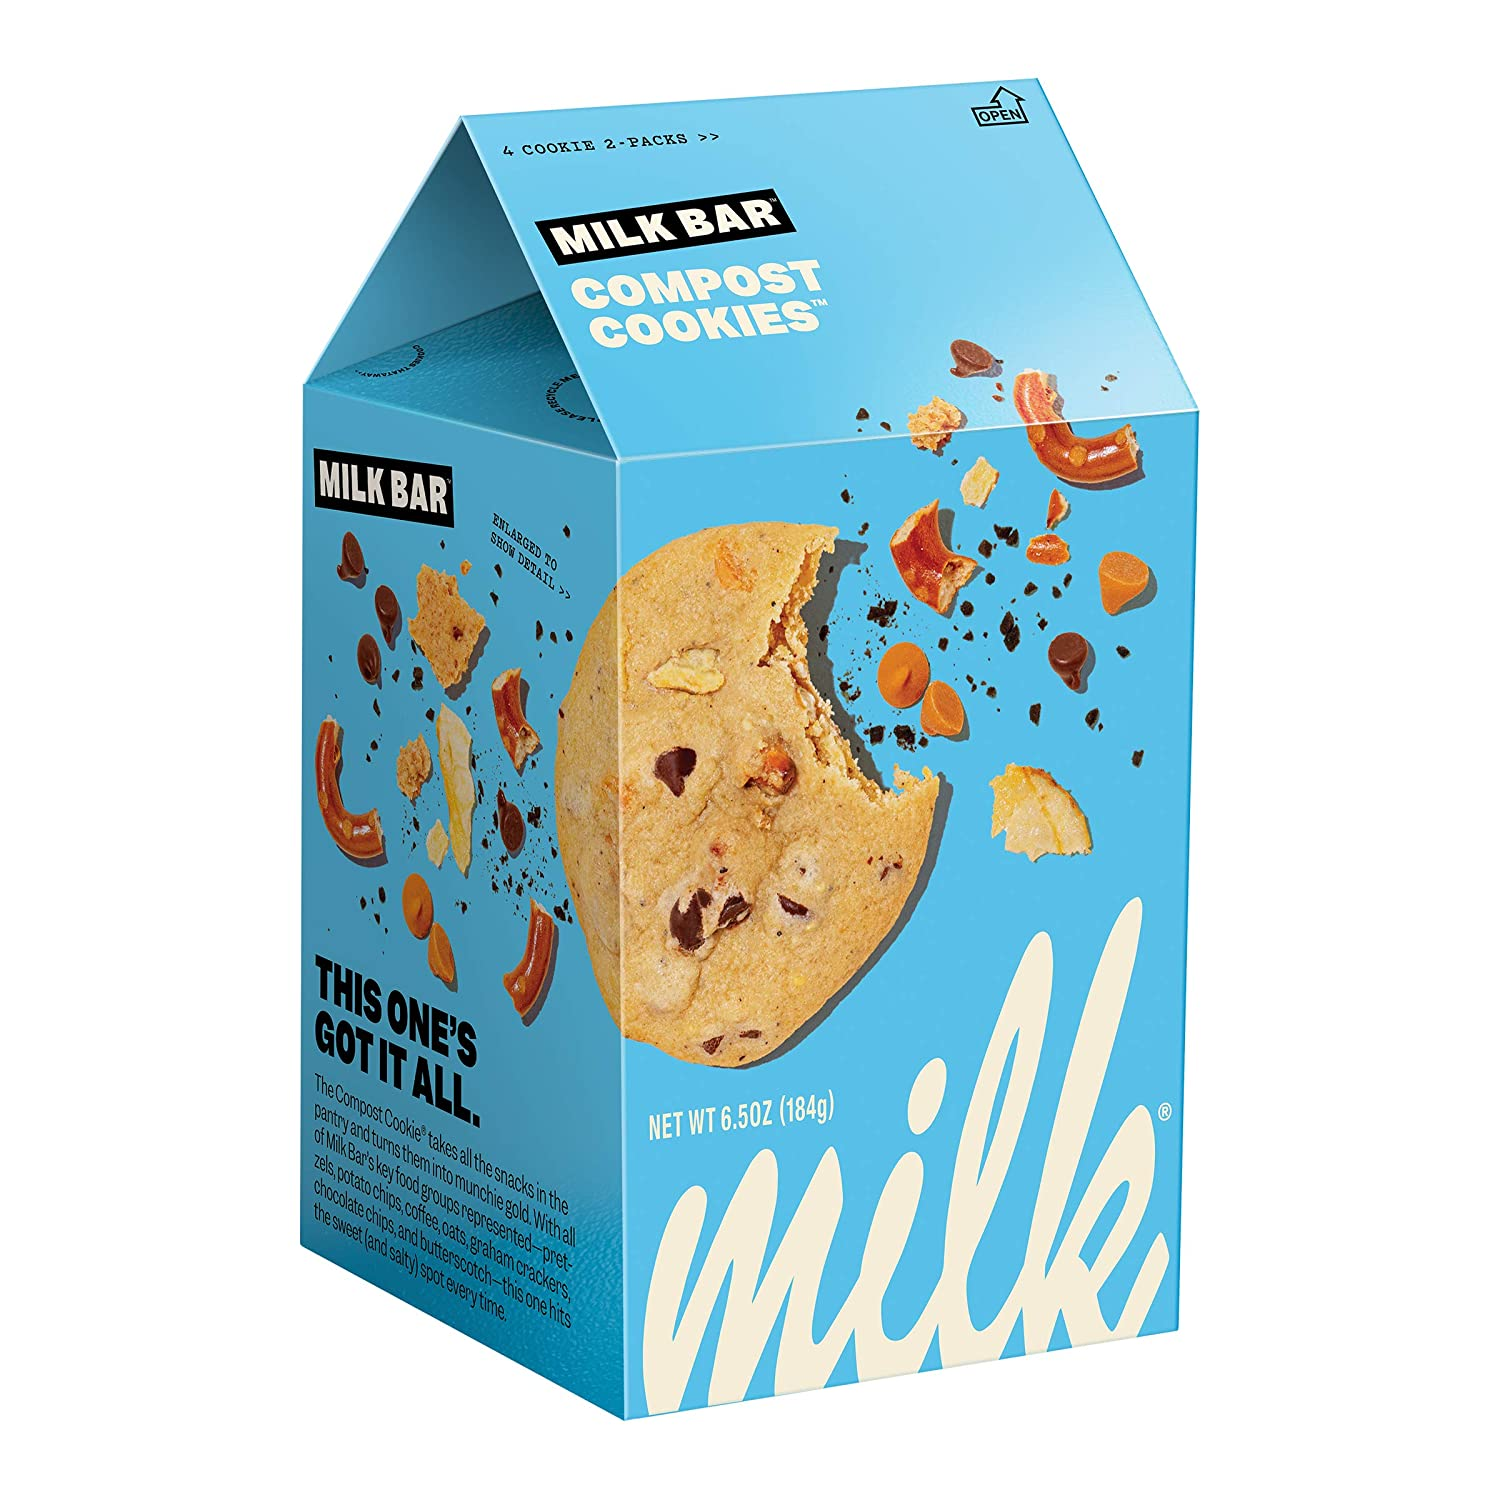 MILK BAR Chocolate Chip Industry No. 1 New Orleans Mall Cookie Chips Pretzels Potato with Coff